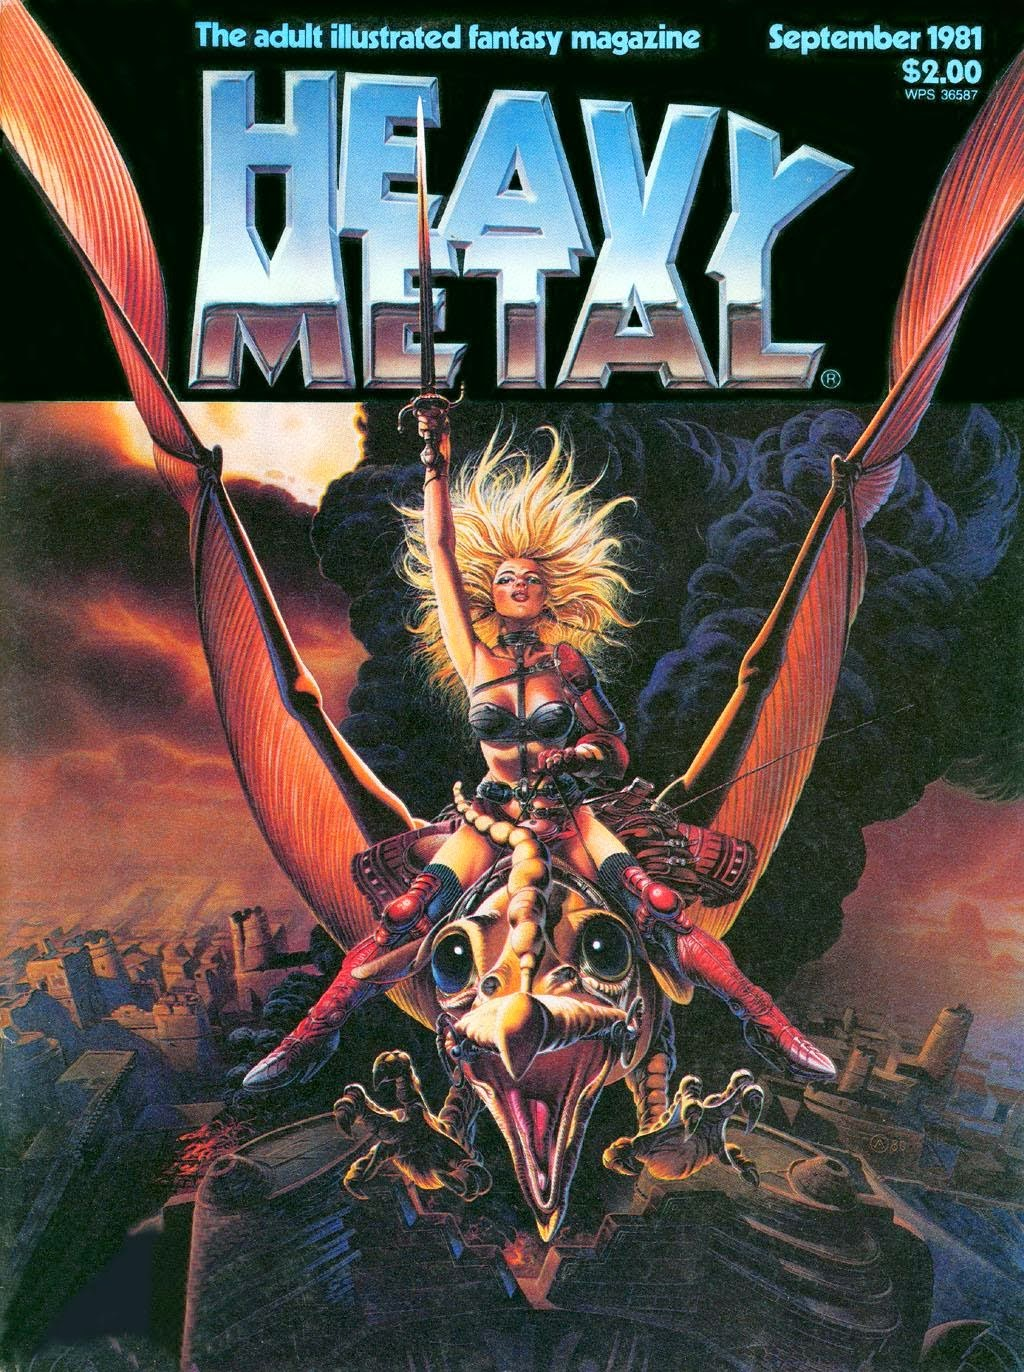 Heavy metal pic nudity cartoon movies